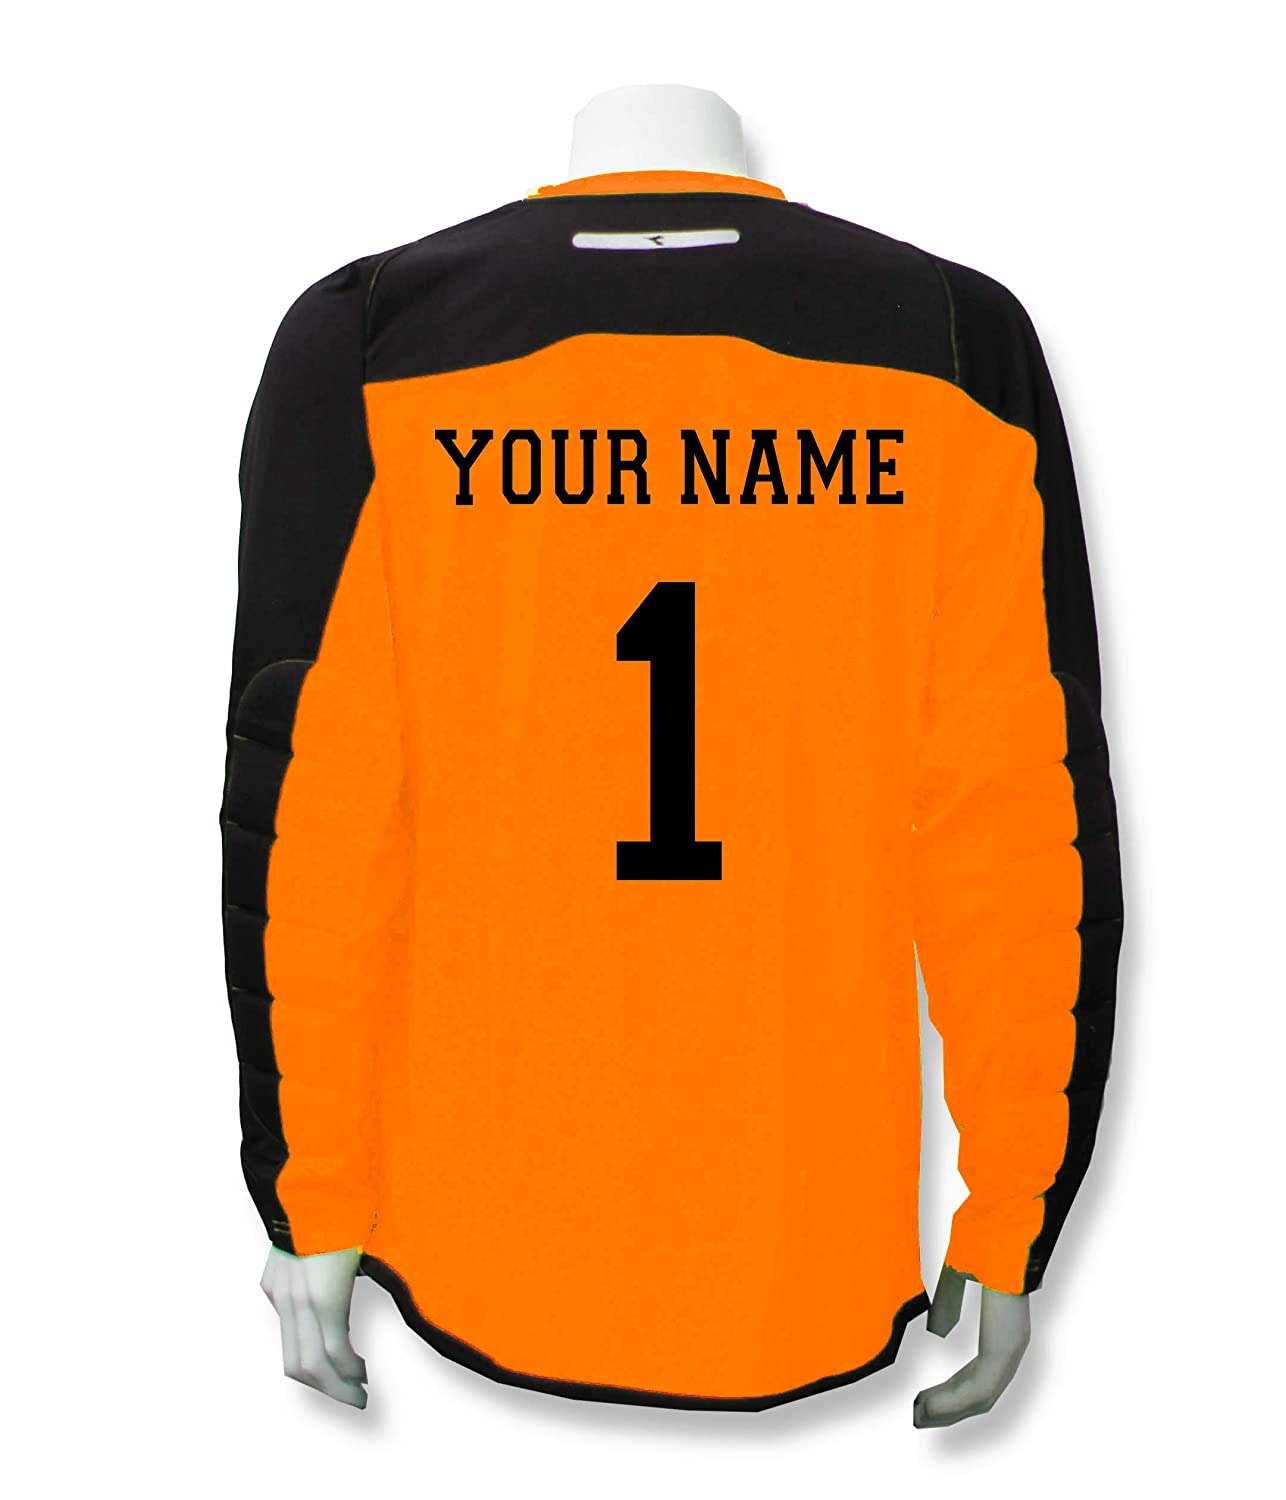 Diadora Enzo Goalkeeper Jersey Personalized with your name and number B072MK6H9P Medium|蛍光オレンジ 蛍光オレンジ Medium